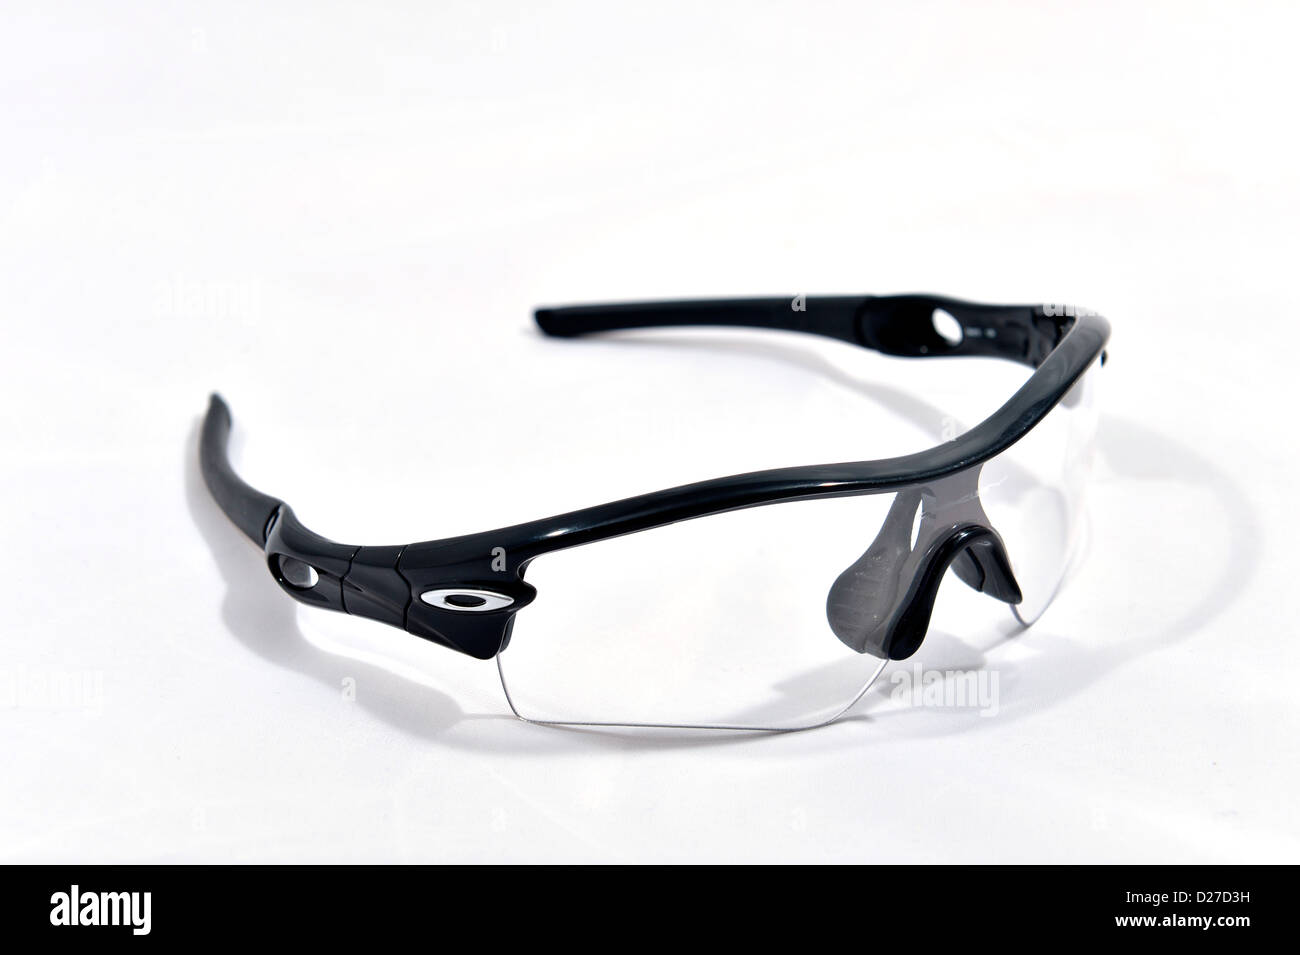 oakley glasses stock  oakley radar path professional sport glasses stock photo